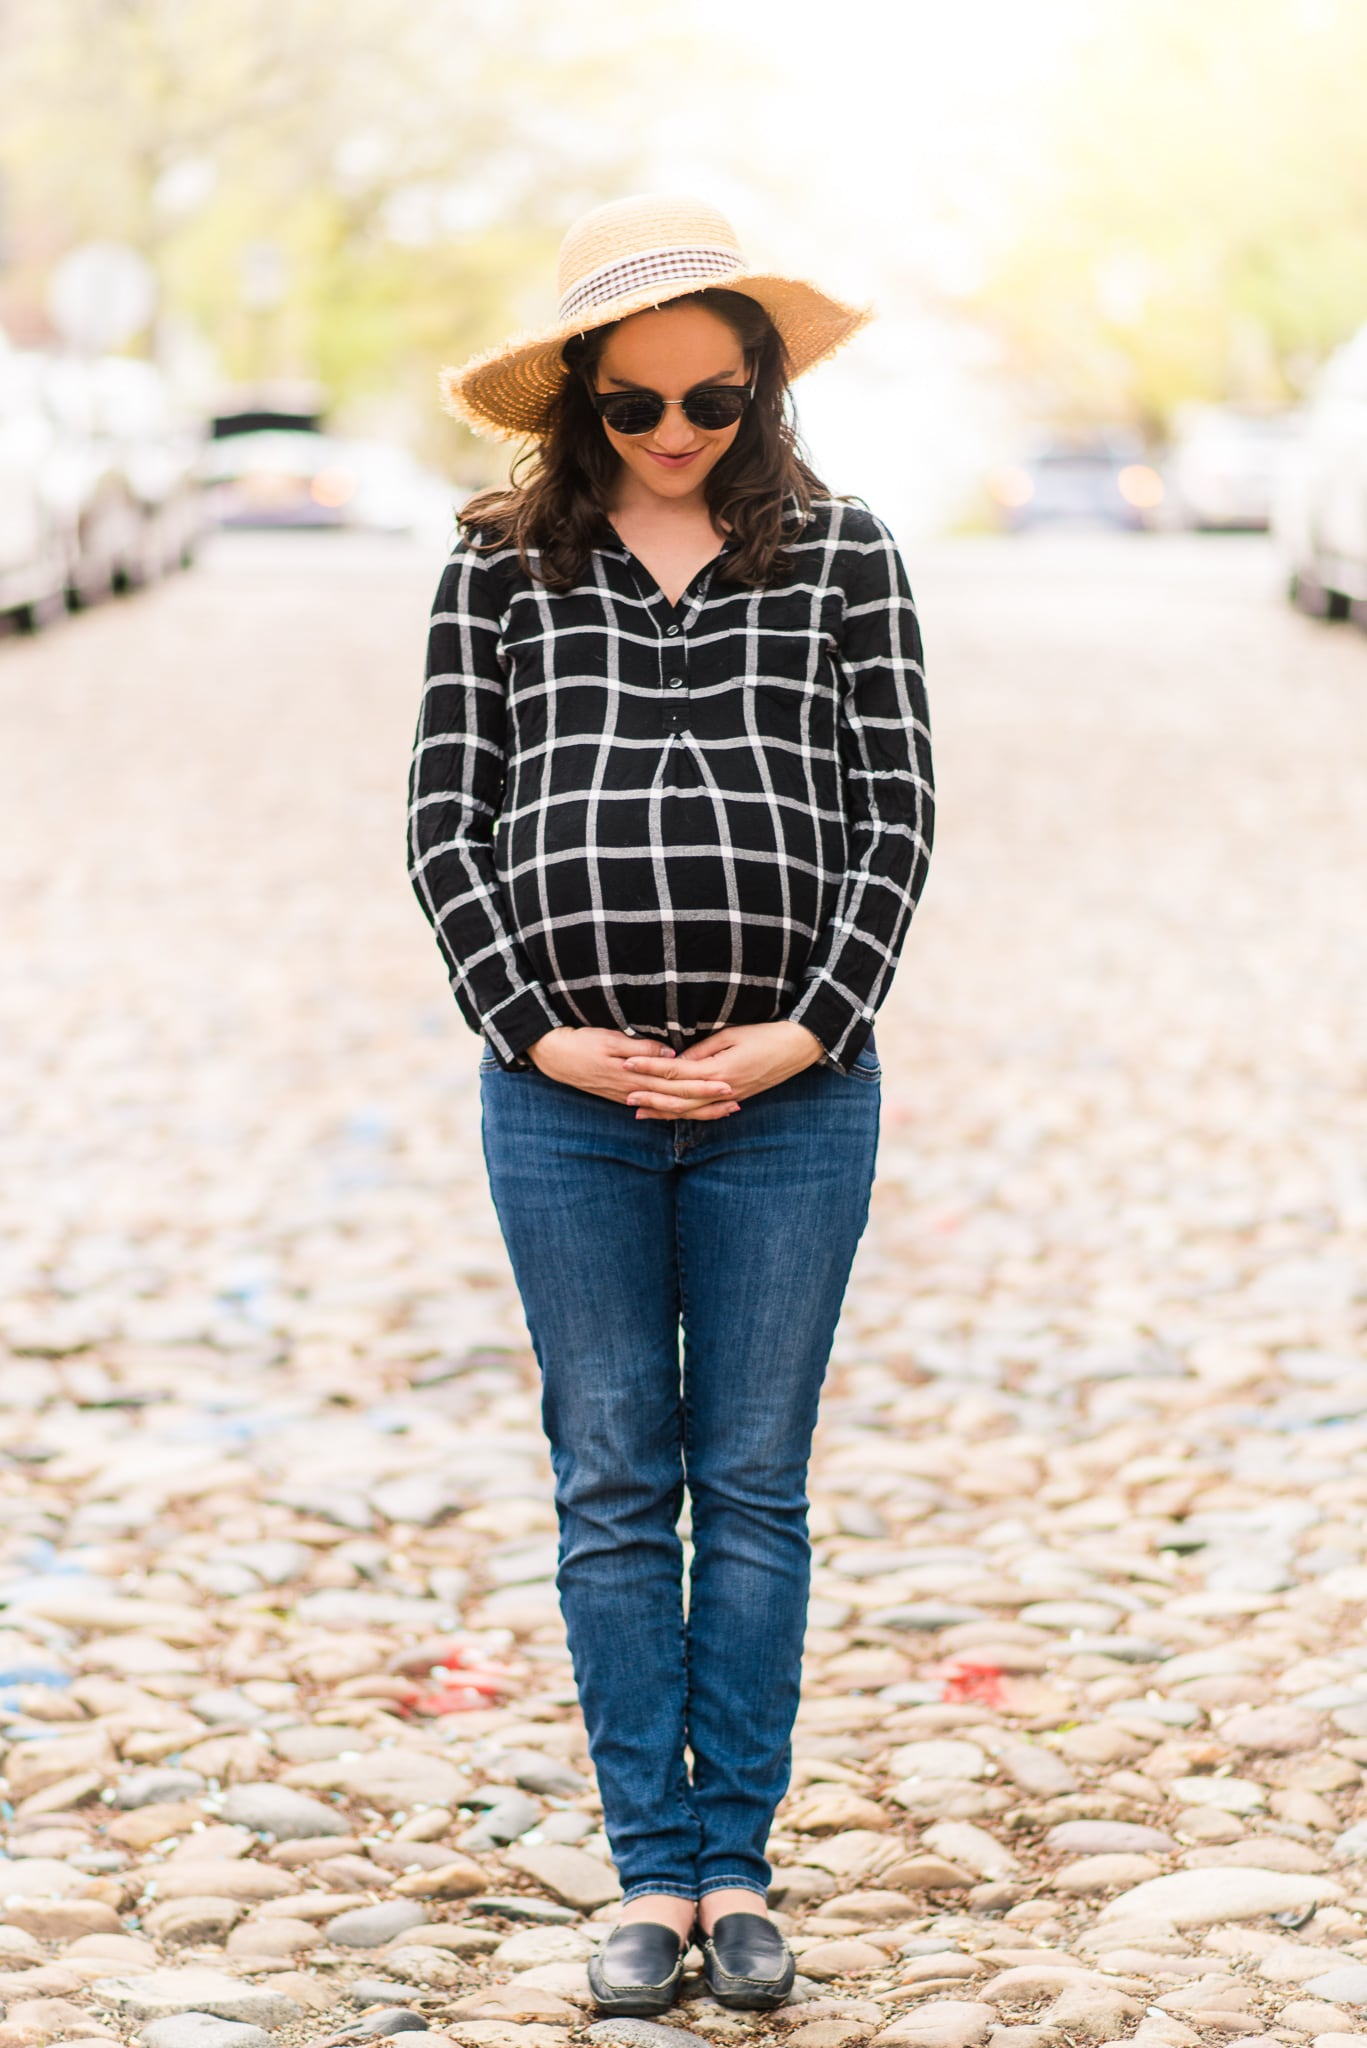 A pregnant woman poses along the cobblestone street during her maternity session in Old Town Alexandria